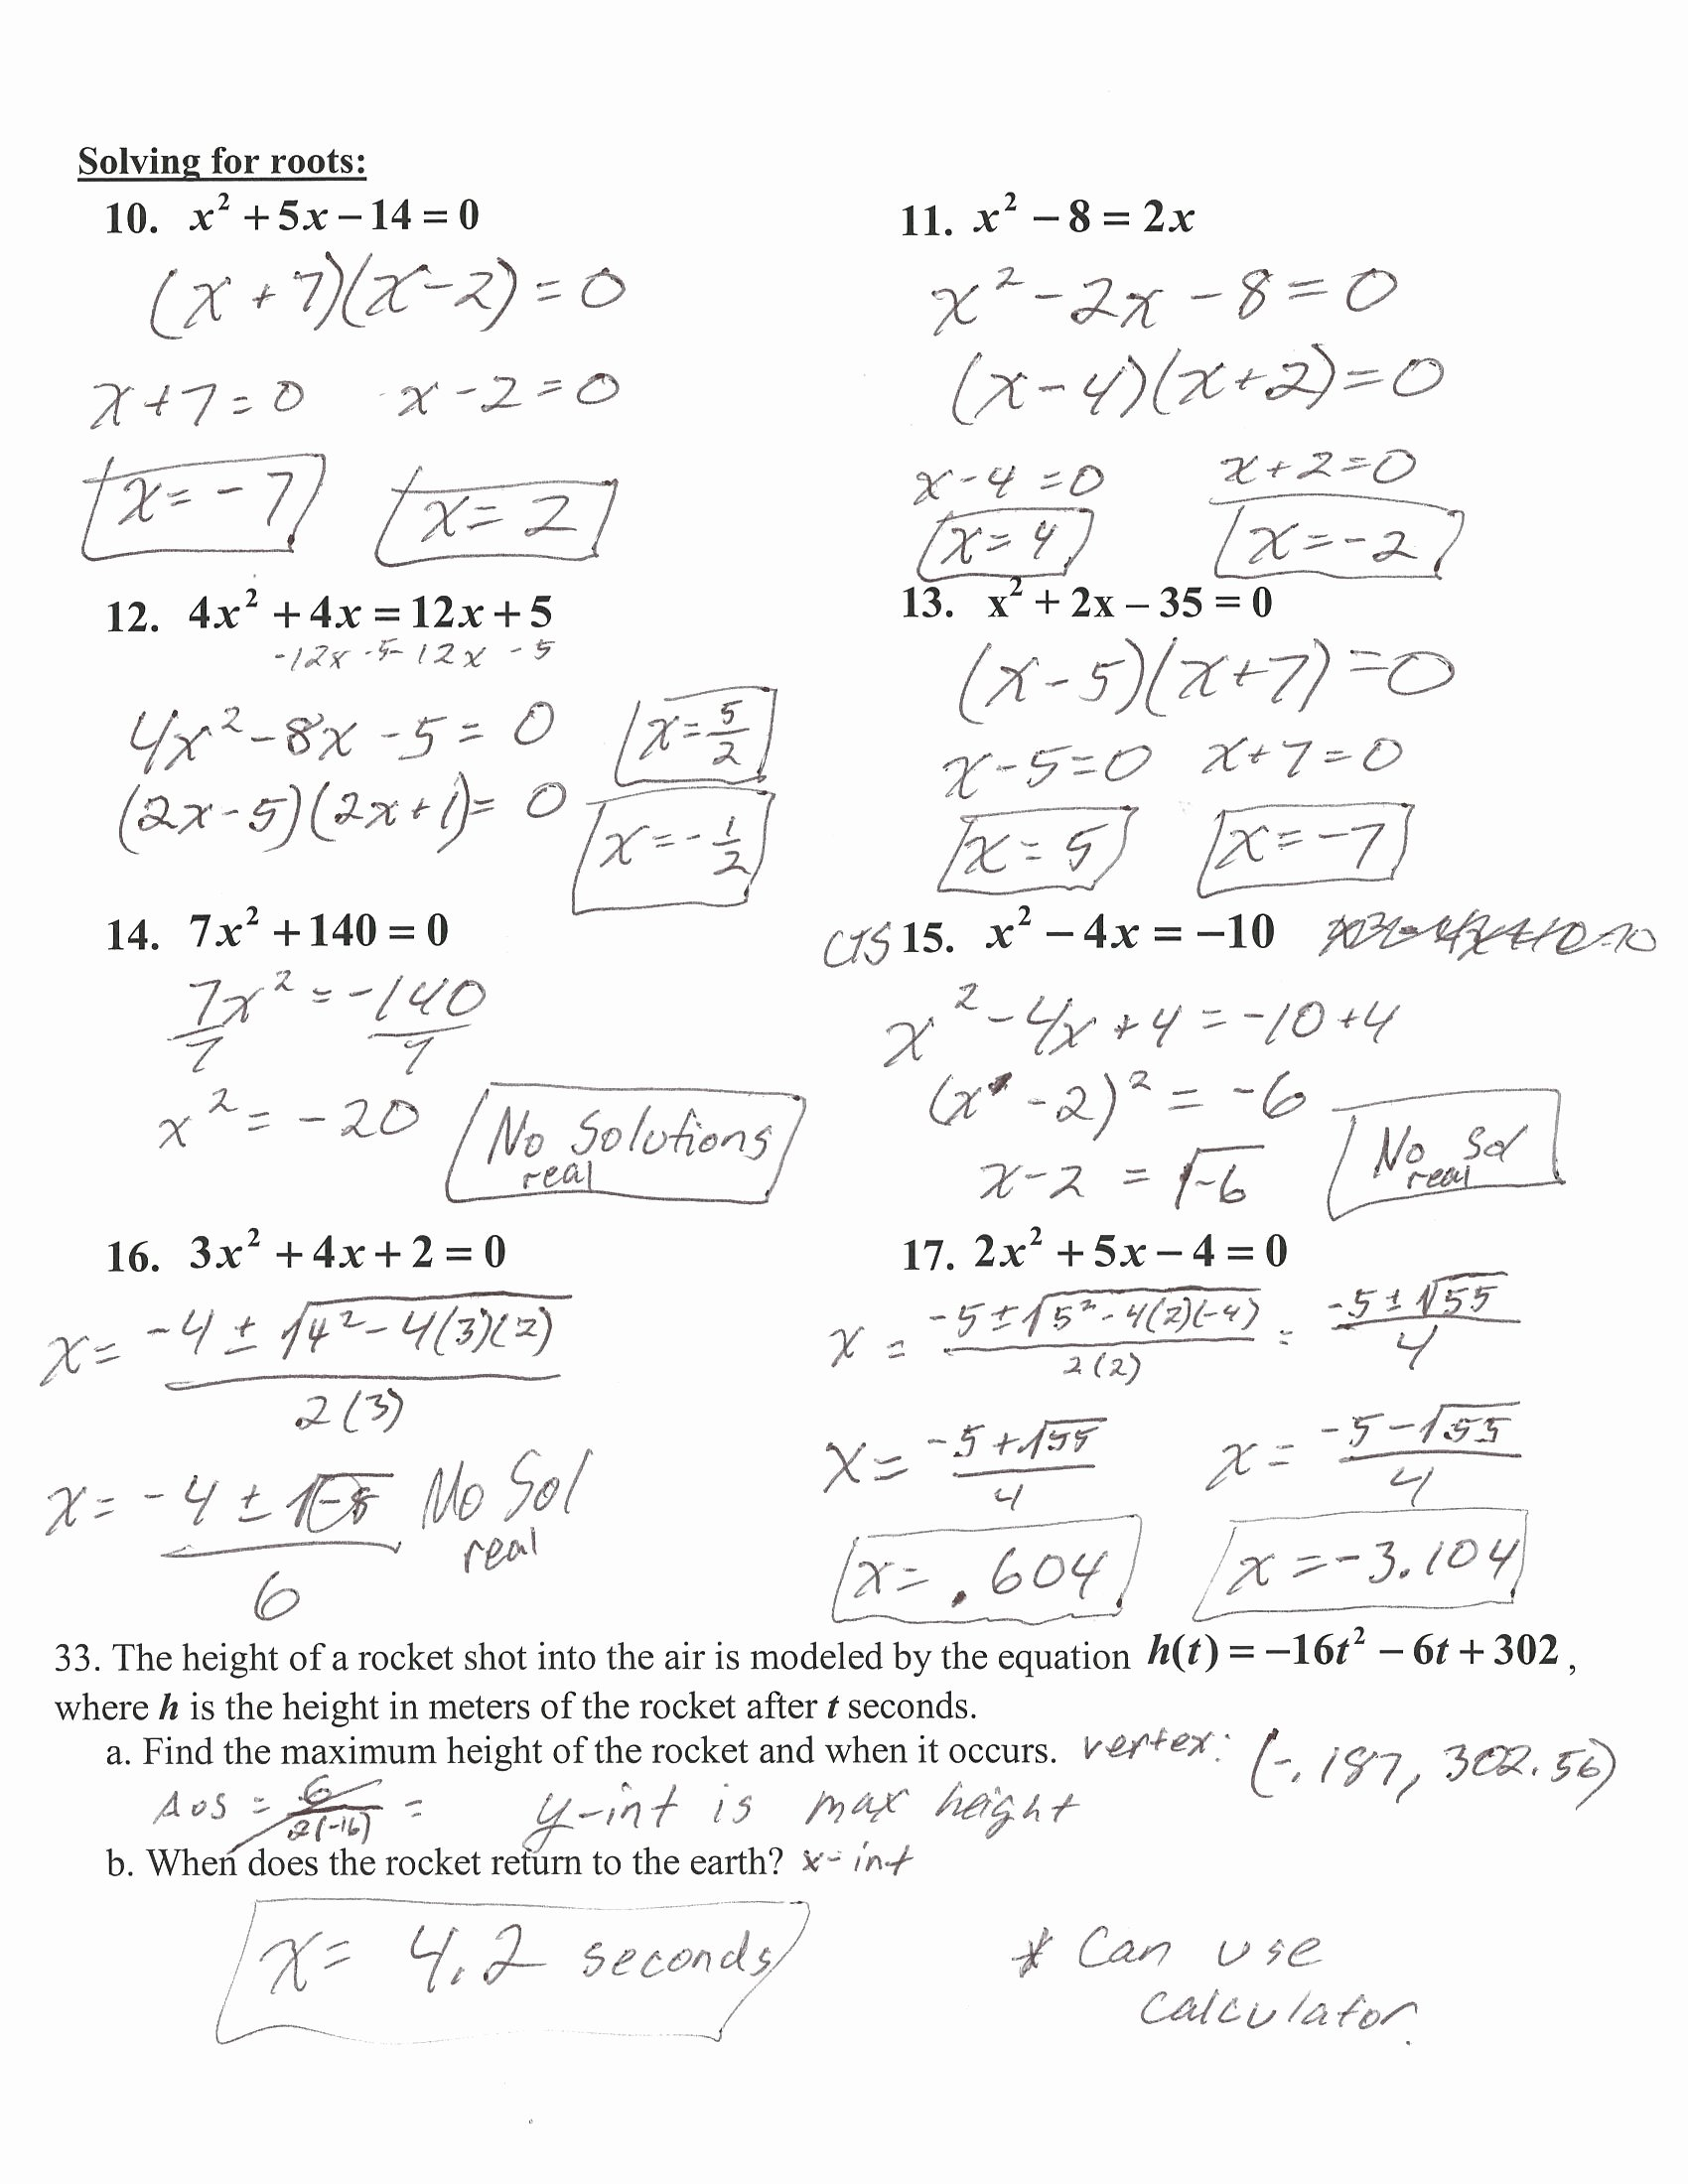 Solving Equations Review Worksheet Elegant solving Equations Review Packet Tessshebaylo